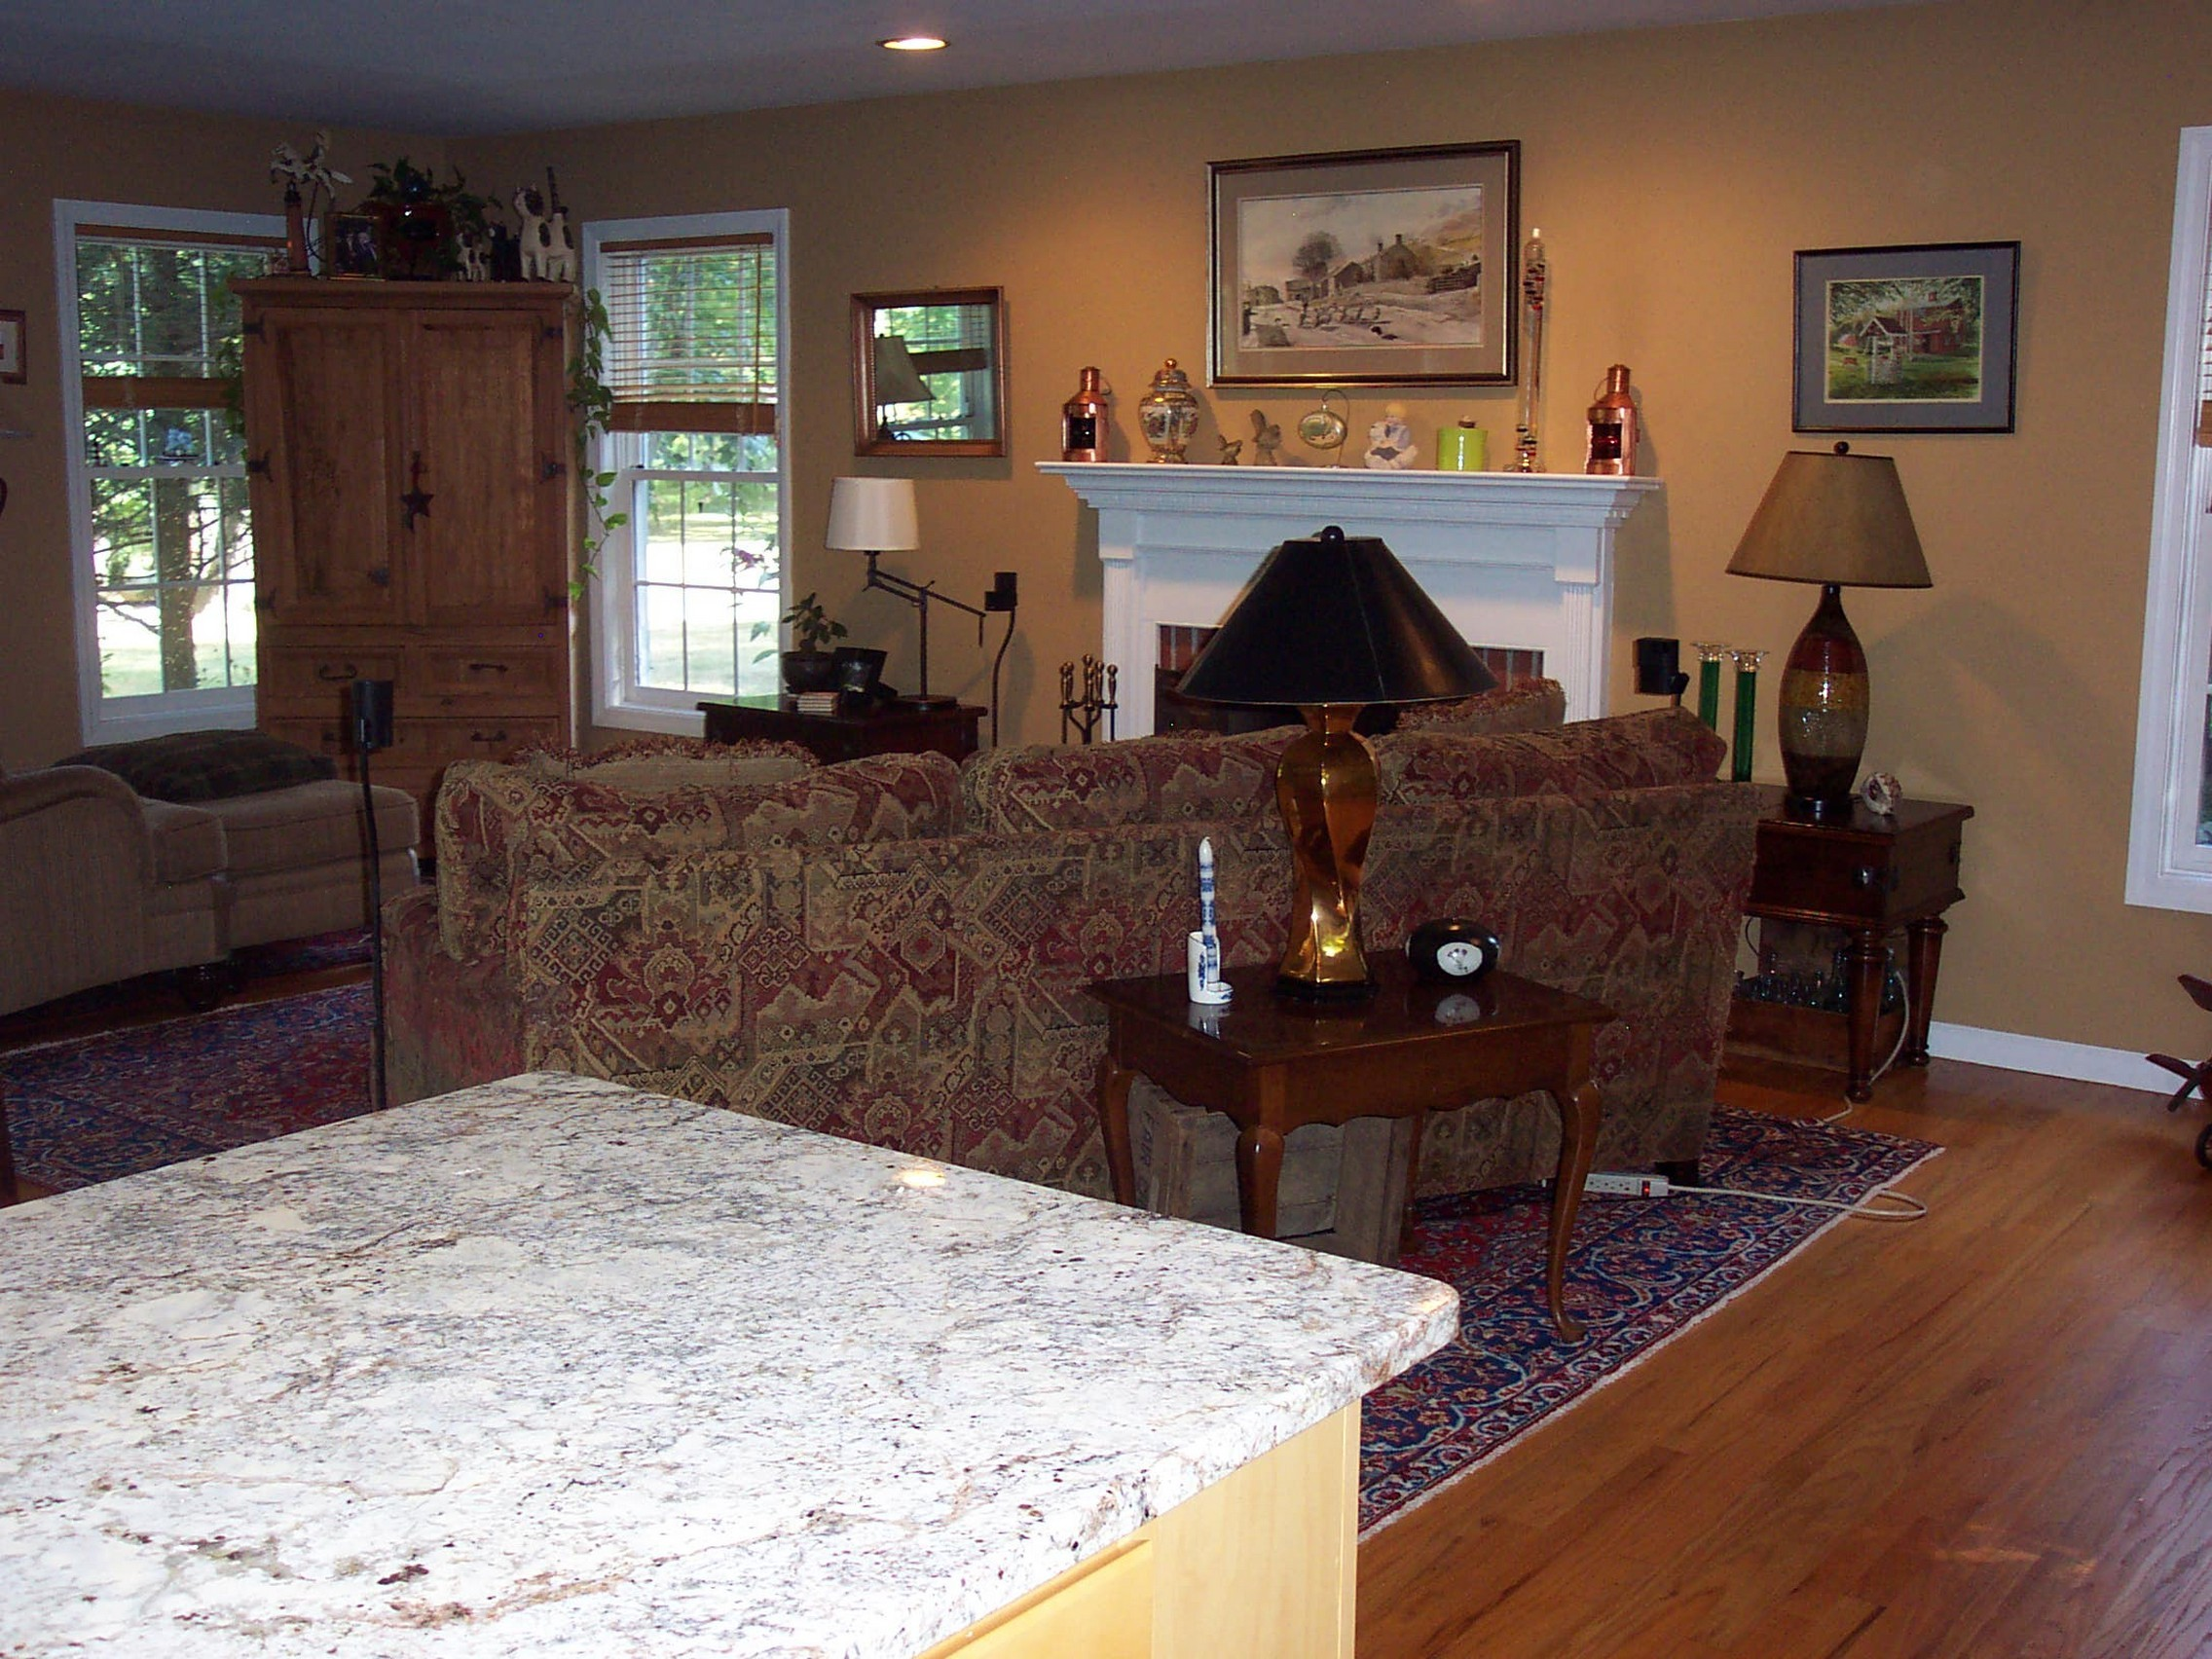 Single Family Home for Sale at Wonderful Offering at a Great Price! 43 Cedar Swamp Rd Deep River, Connecticut 06417 United States